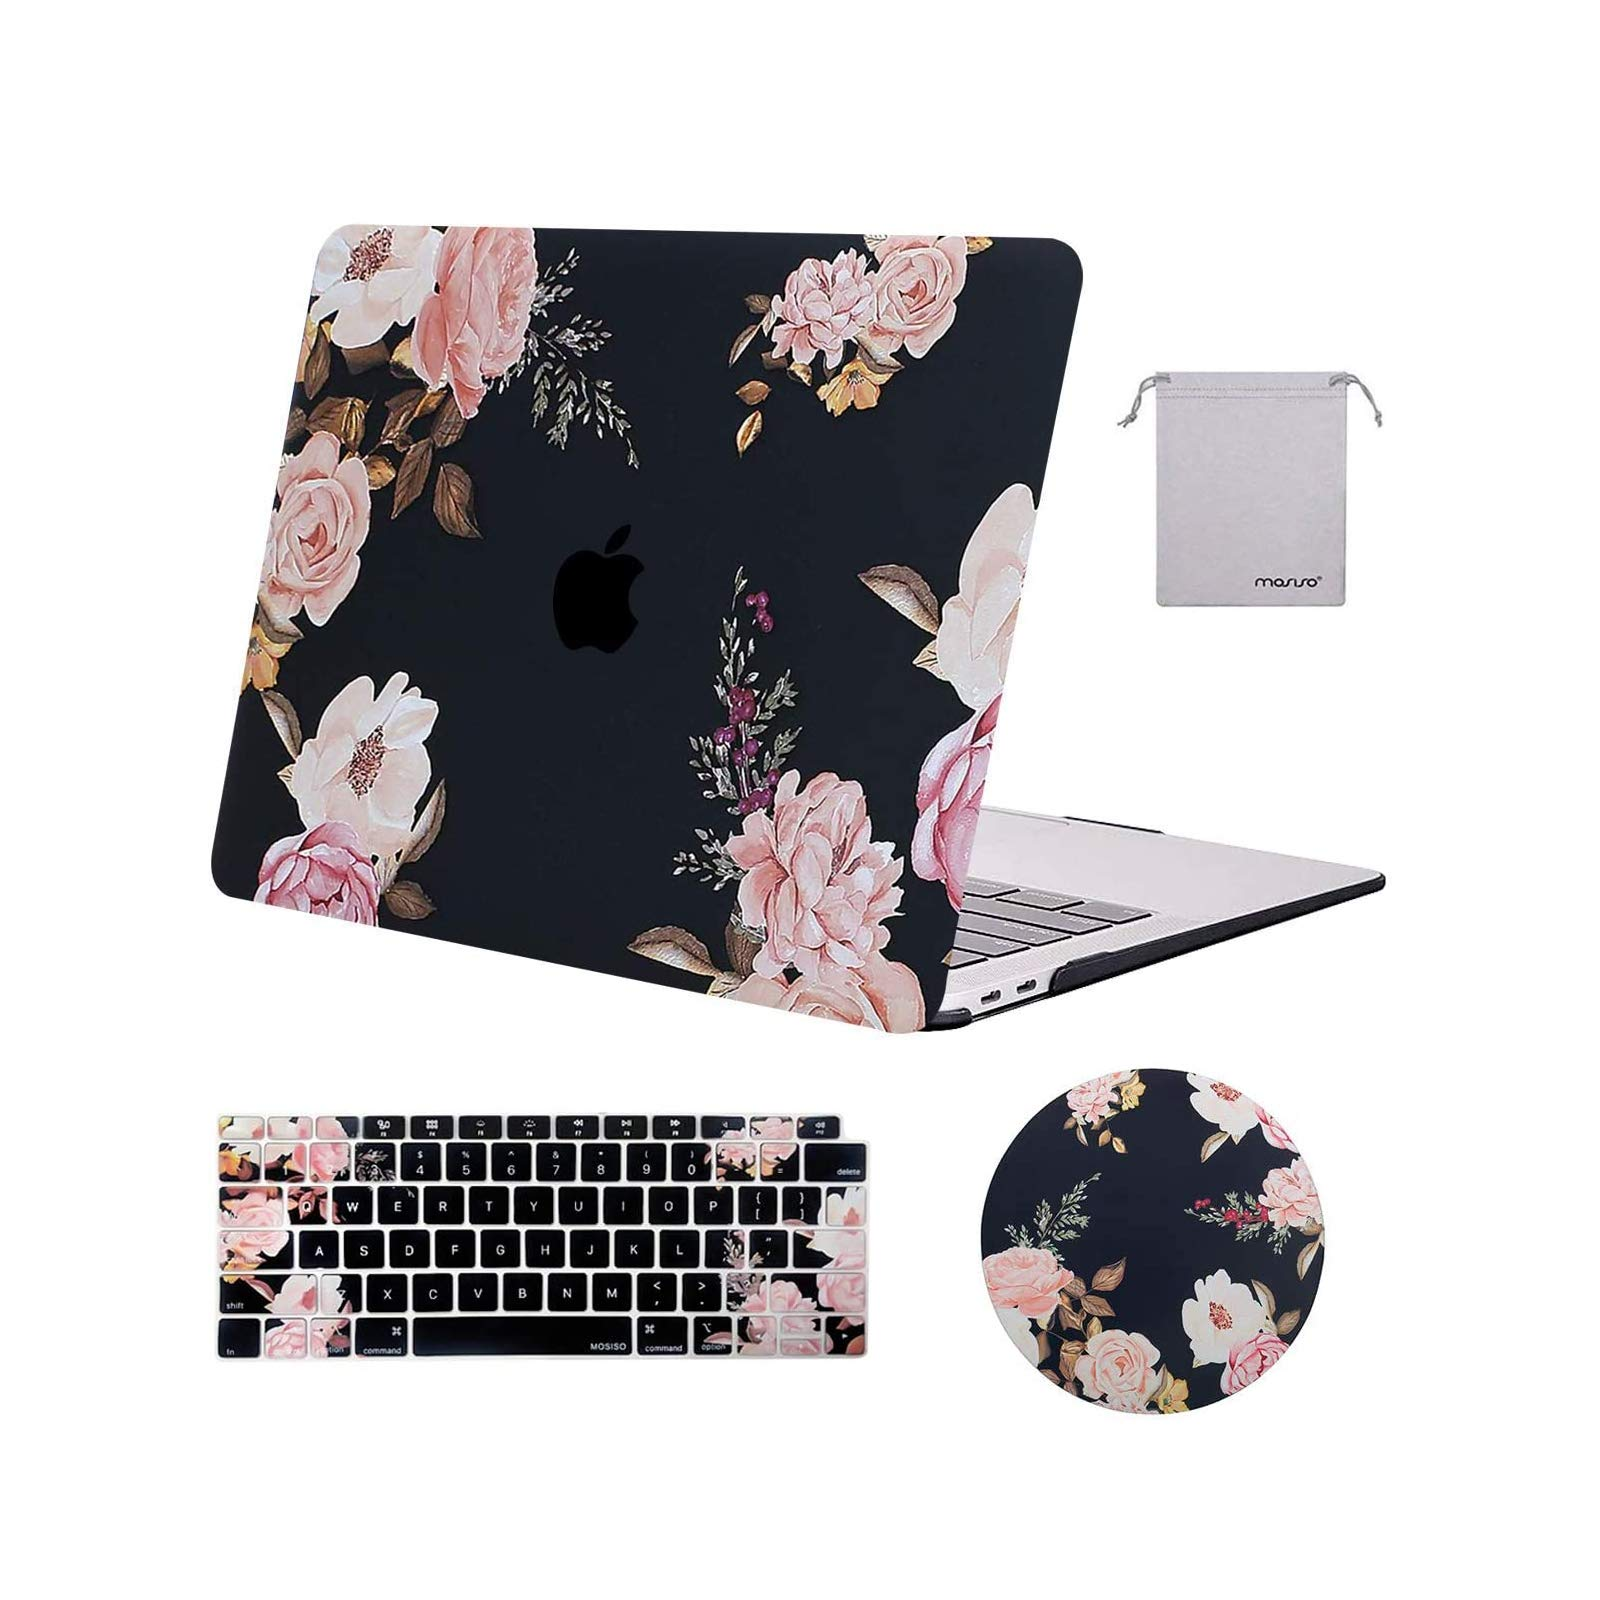 MOSISO Compatible with MacBook Air 13 inch Case 2020 2019 2018 Release A2337 M1 A2179 A1932 Retina Display with Touch ID, Plastic Peony Hard Shell Case&Keyboard Cover&Mouse Pad&Storage Bag, Black